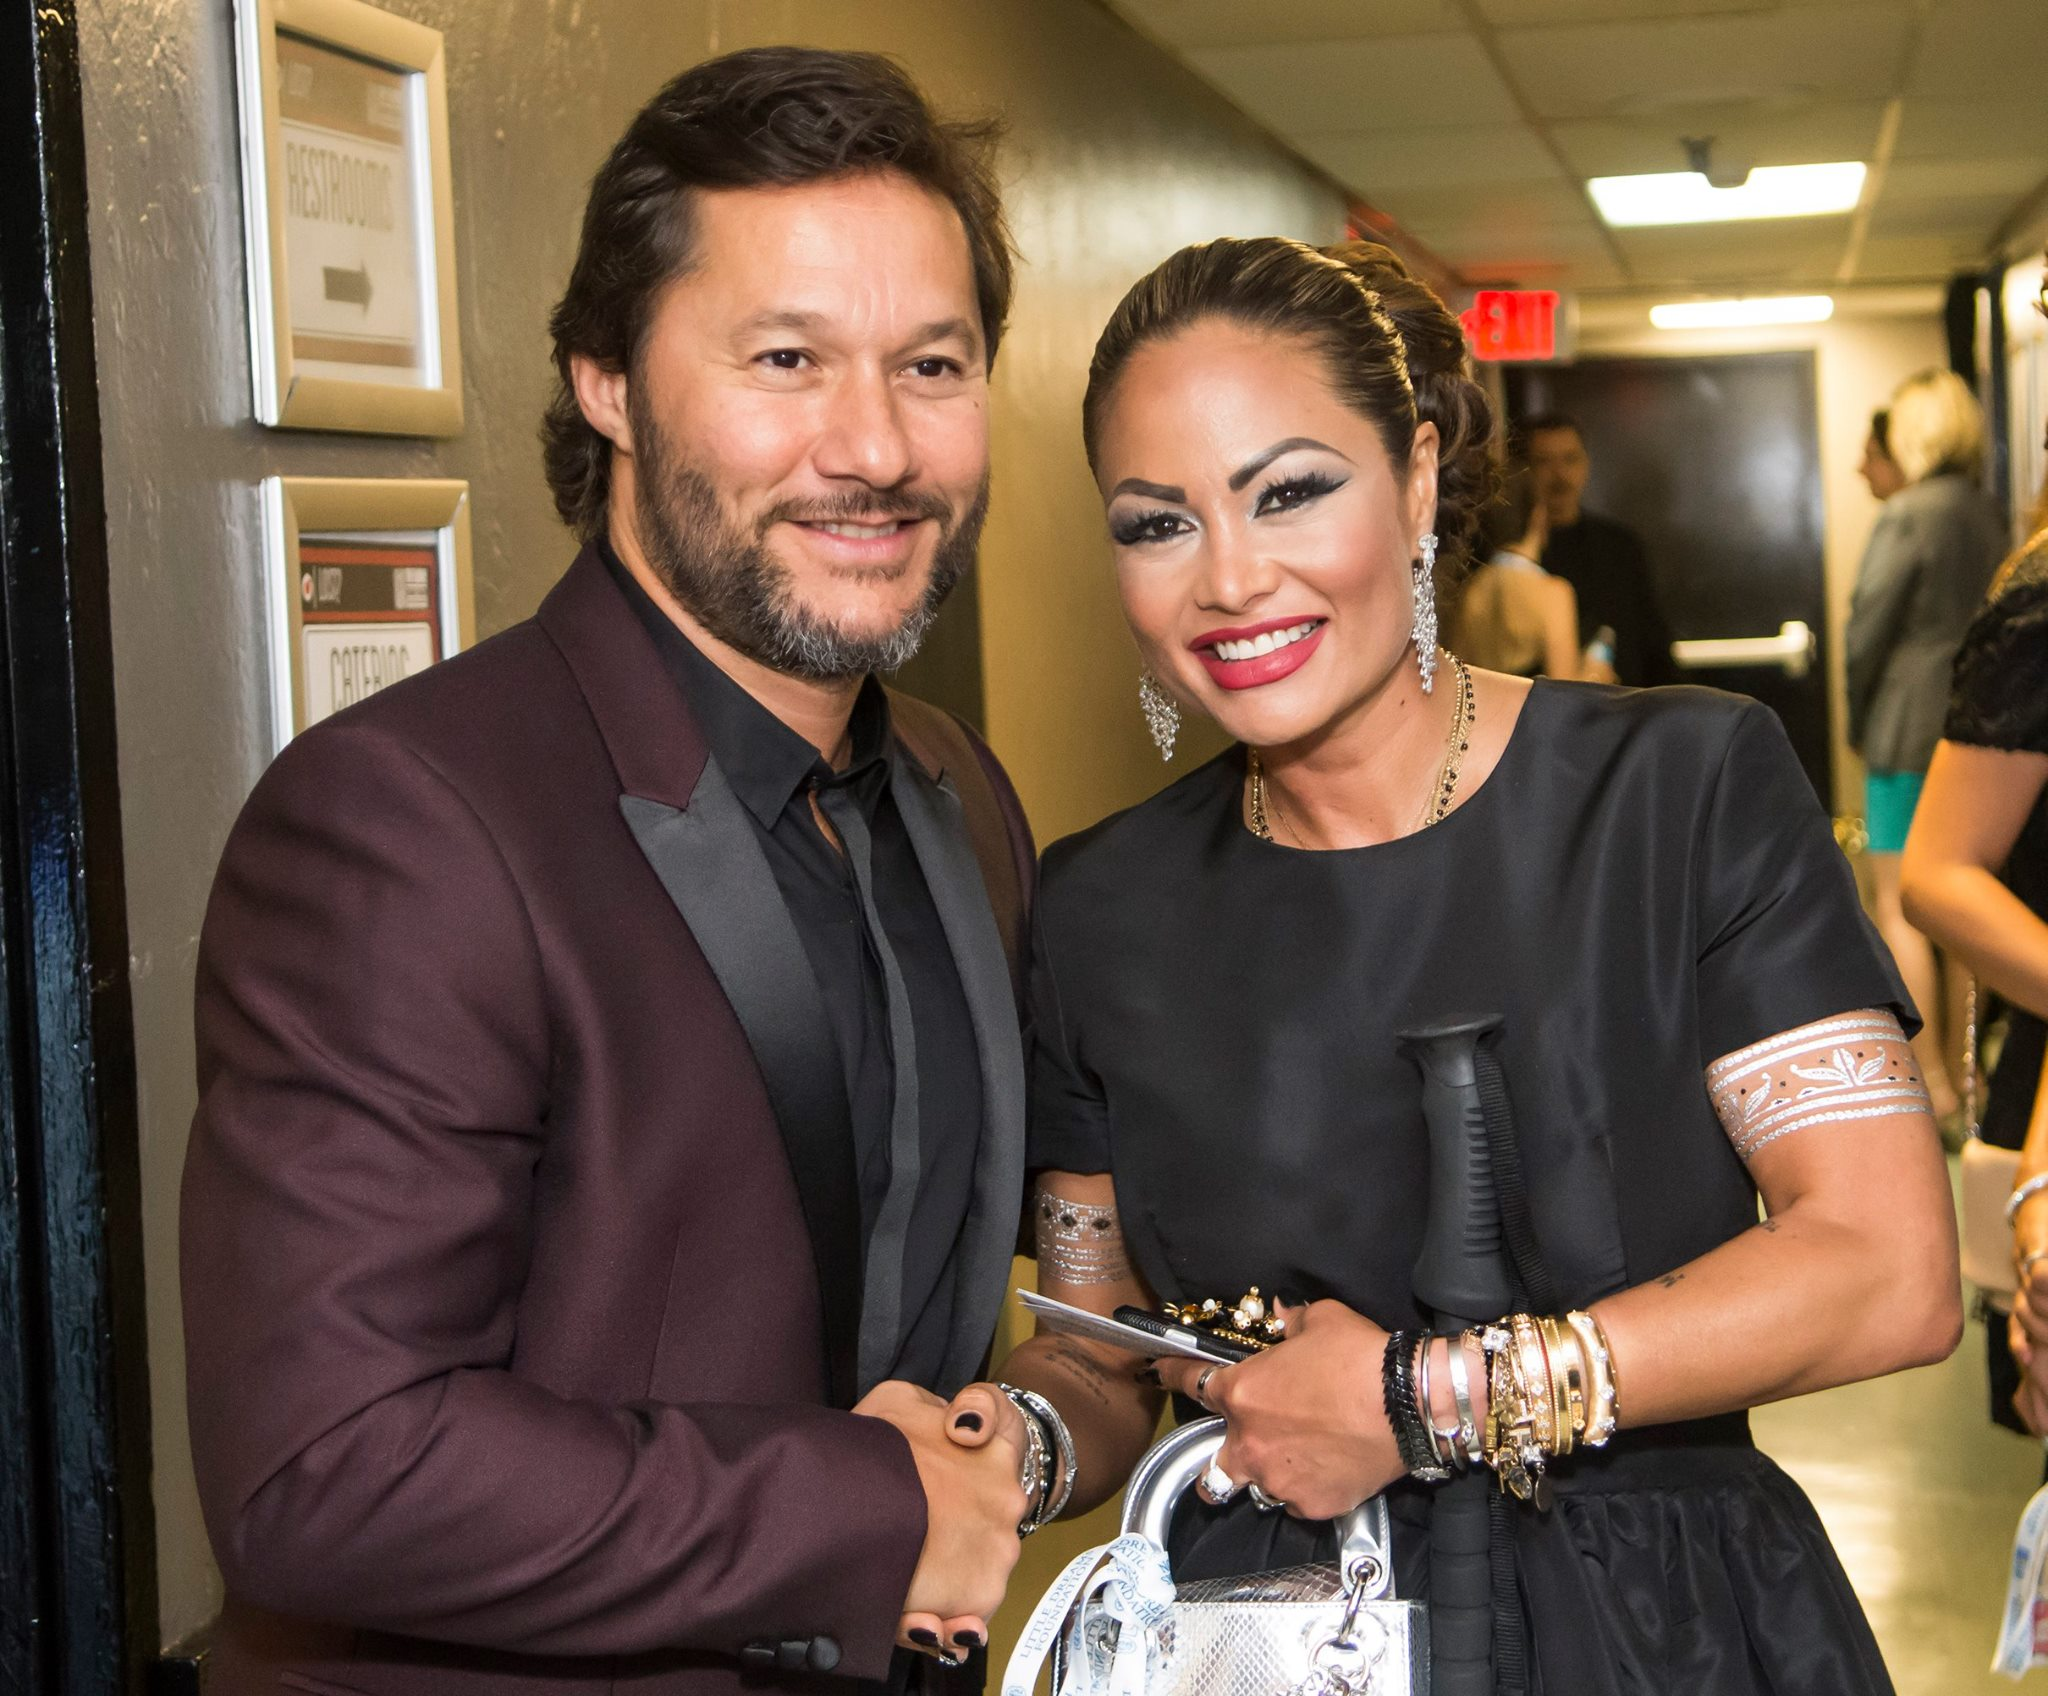 Orianne Collins with singer, actor and 3 time Latin Grammy winner, Diego Torres. Photo: Magical Photos/Mitchell Zachs